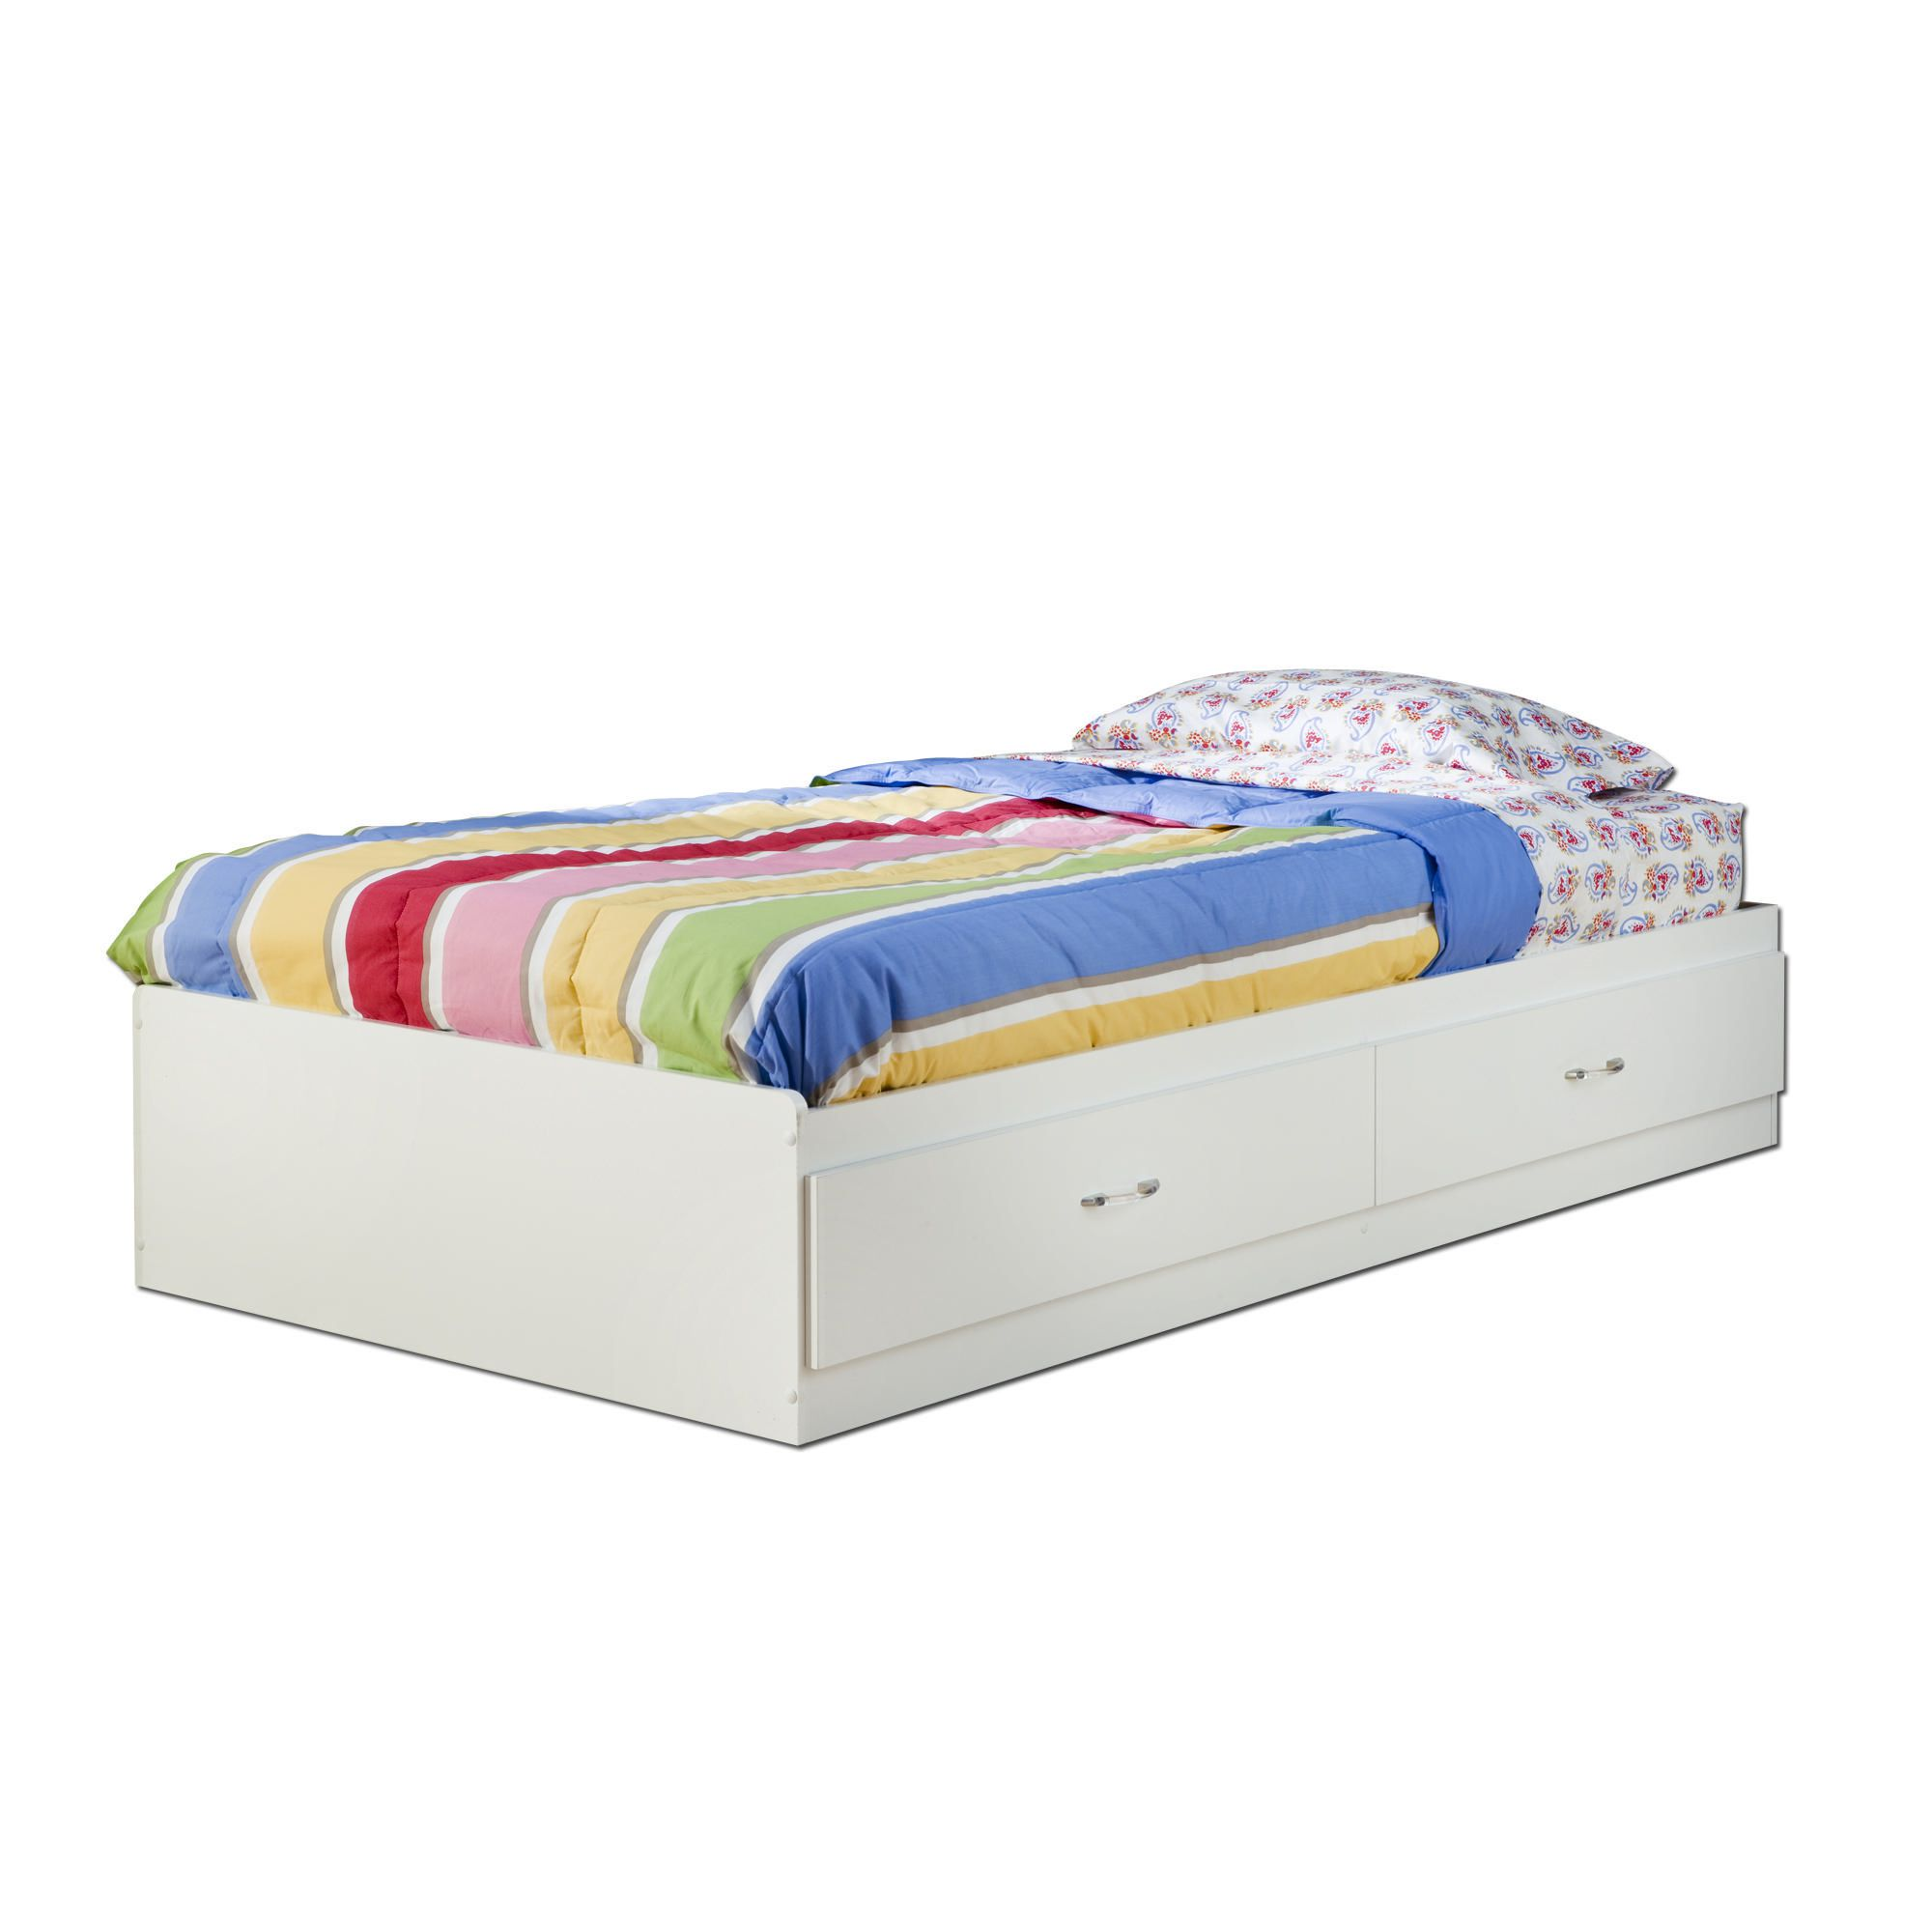 South shore logik twin storage bed 39 with 2 drawers walmart canada